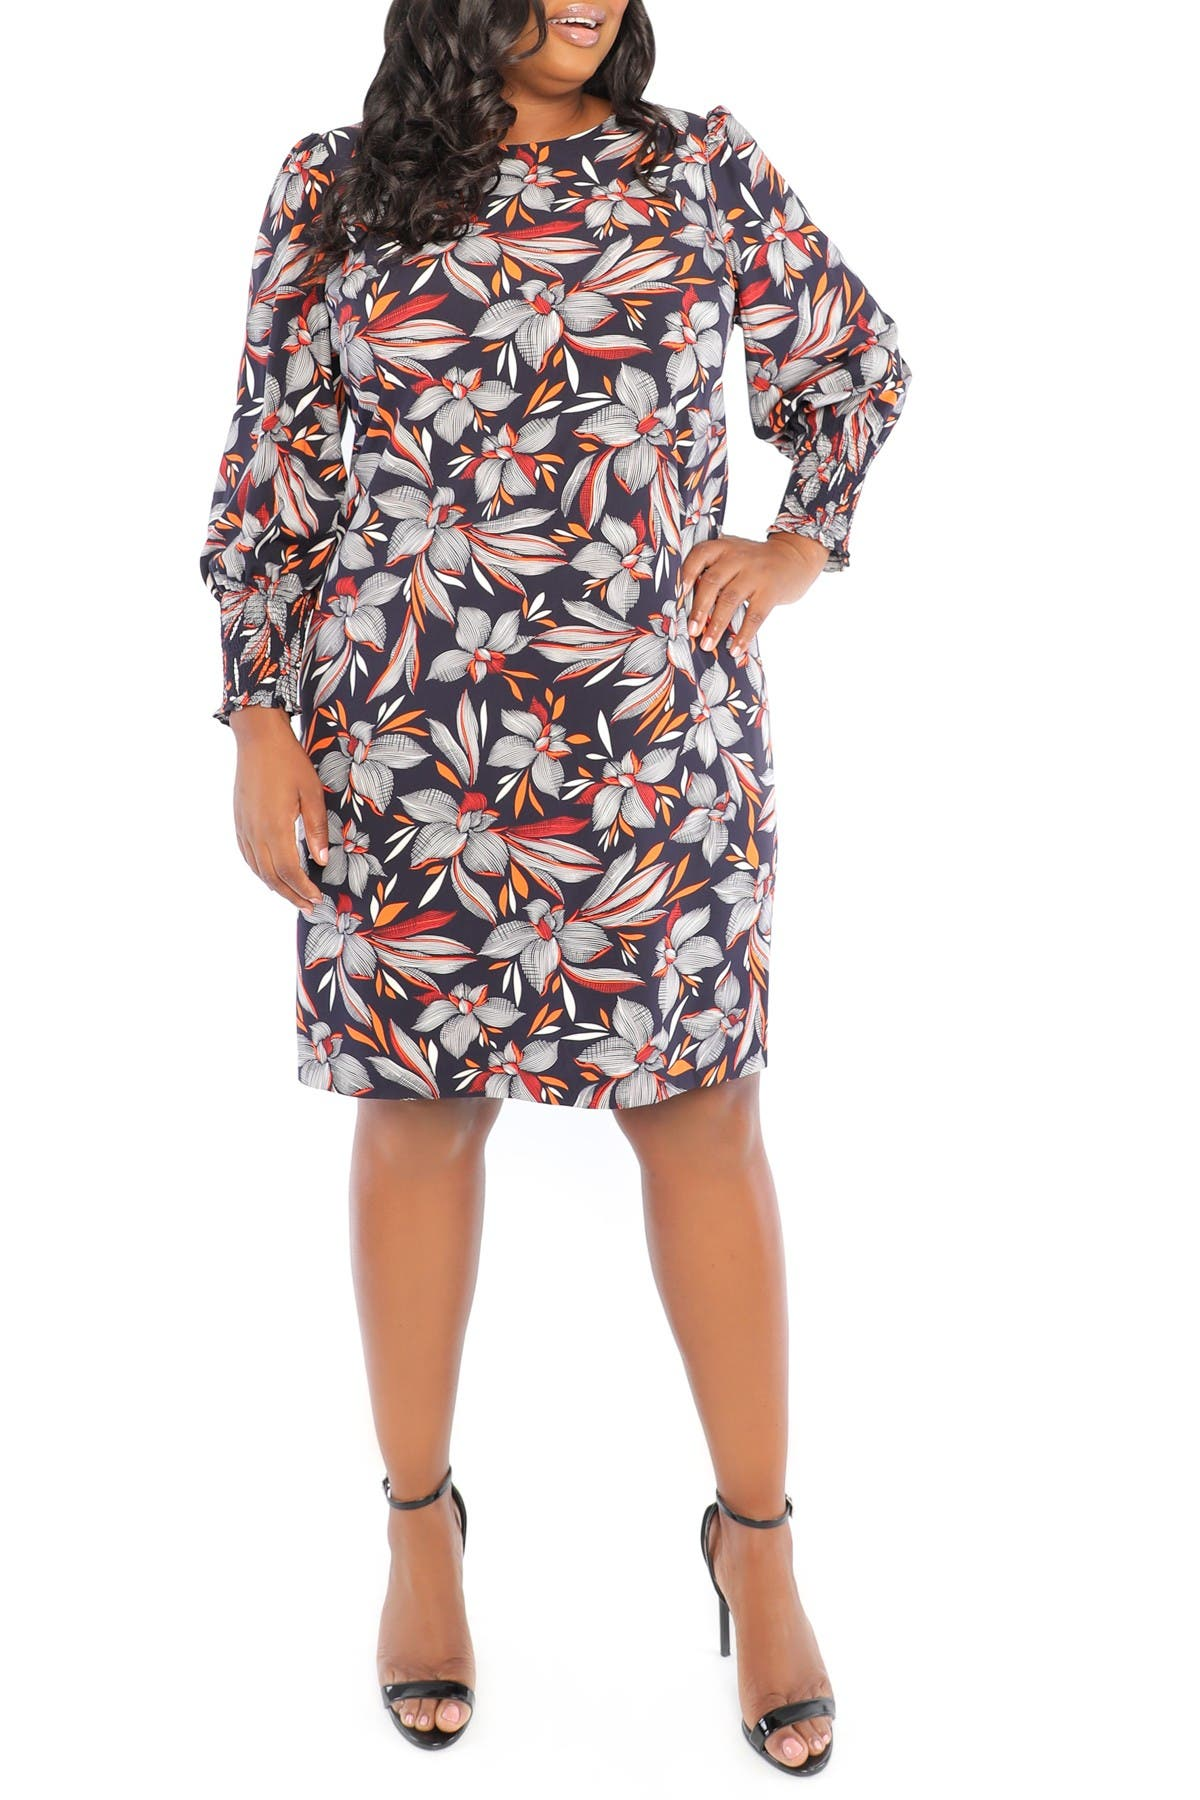 Image of London Times Smocked Cuff Feather Floral Print Puff Sleeve Dress